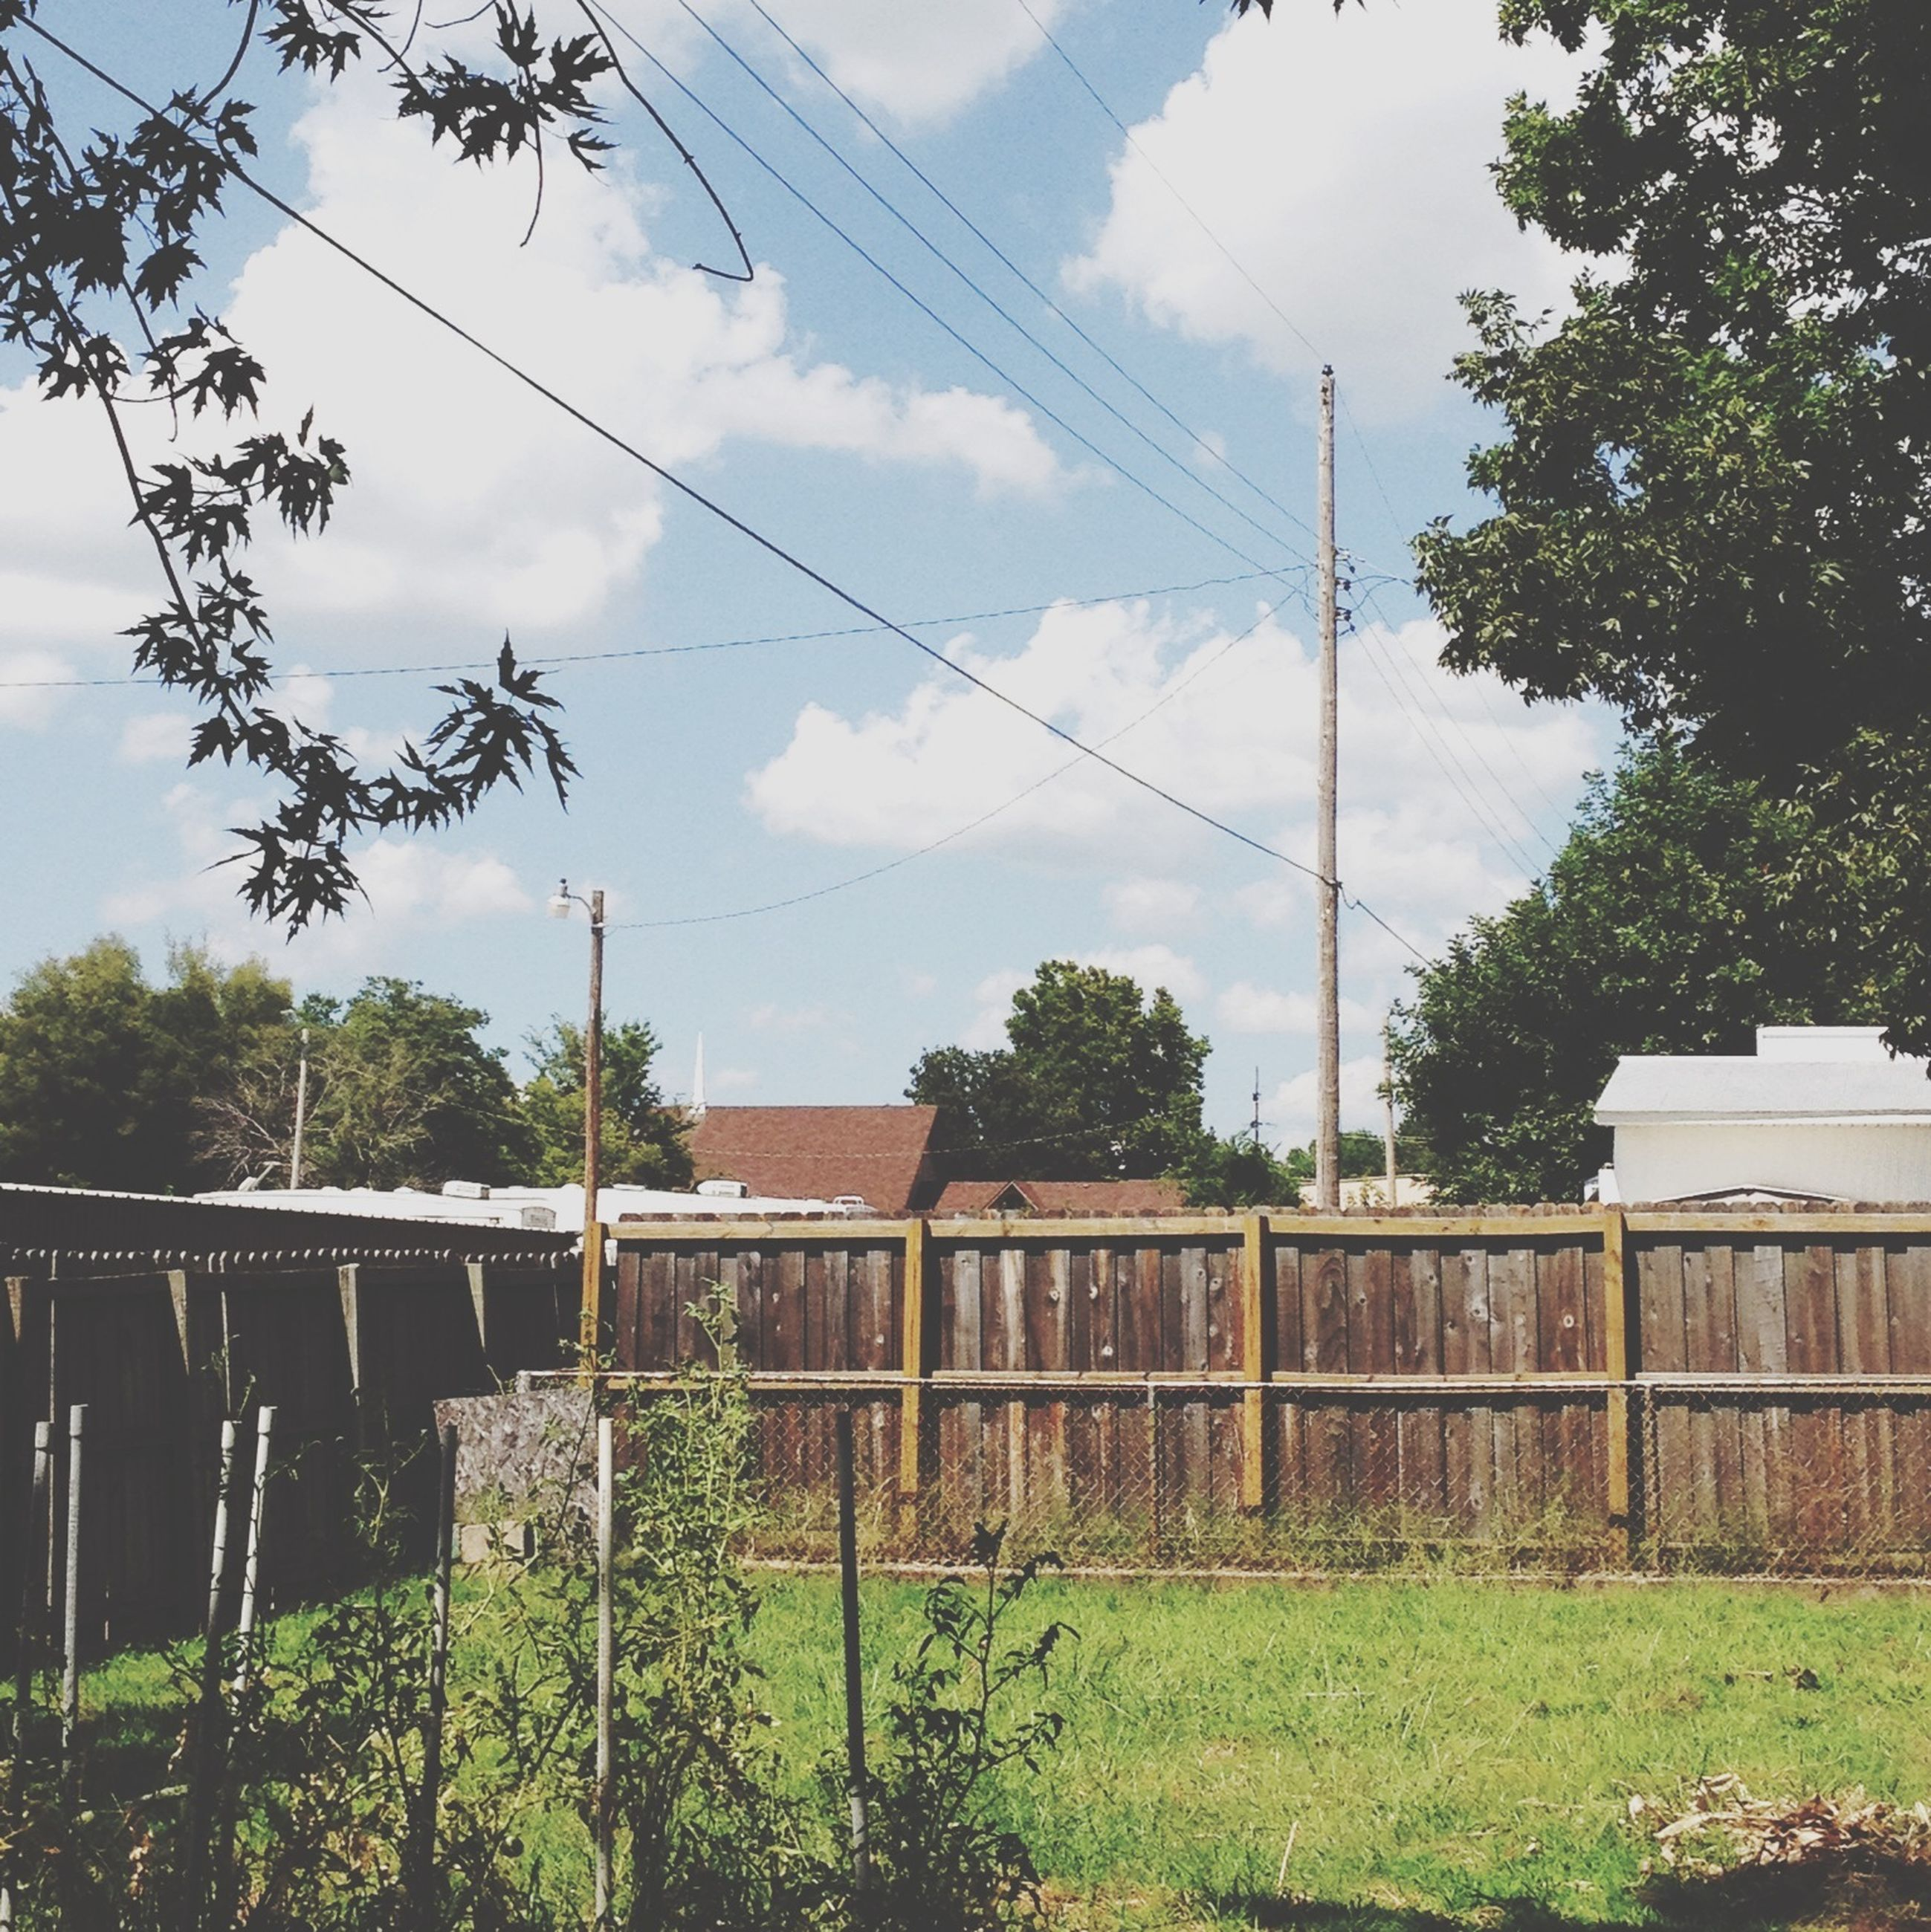 sky, architecture, built structure, building exterior, cloud - sky, tree, fence, cloud, house, grass, plant, growth, field, day, power line, cloudy, outdoors, no people, old, green color